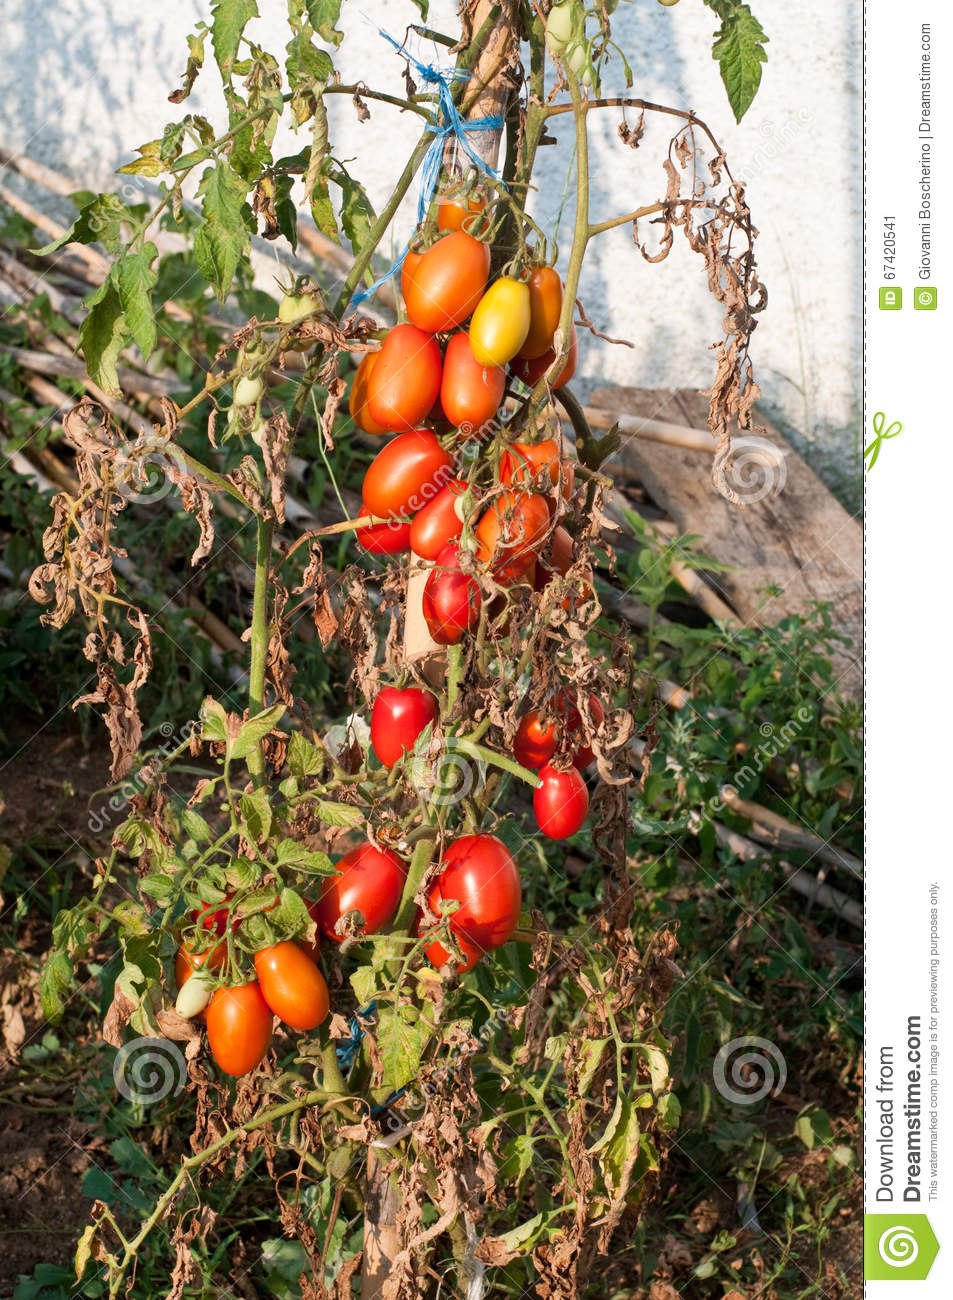 Tomato Plants Grown In A Home Garden Stock Image - Image of ...